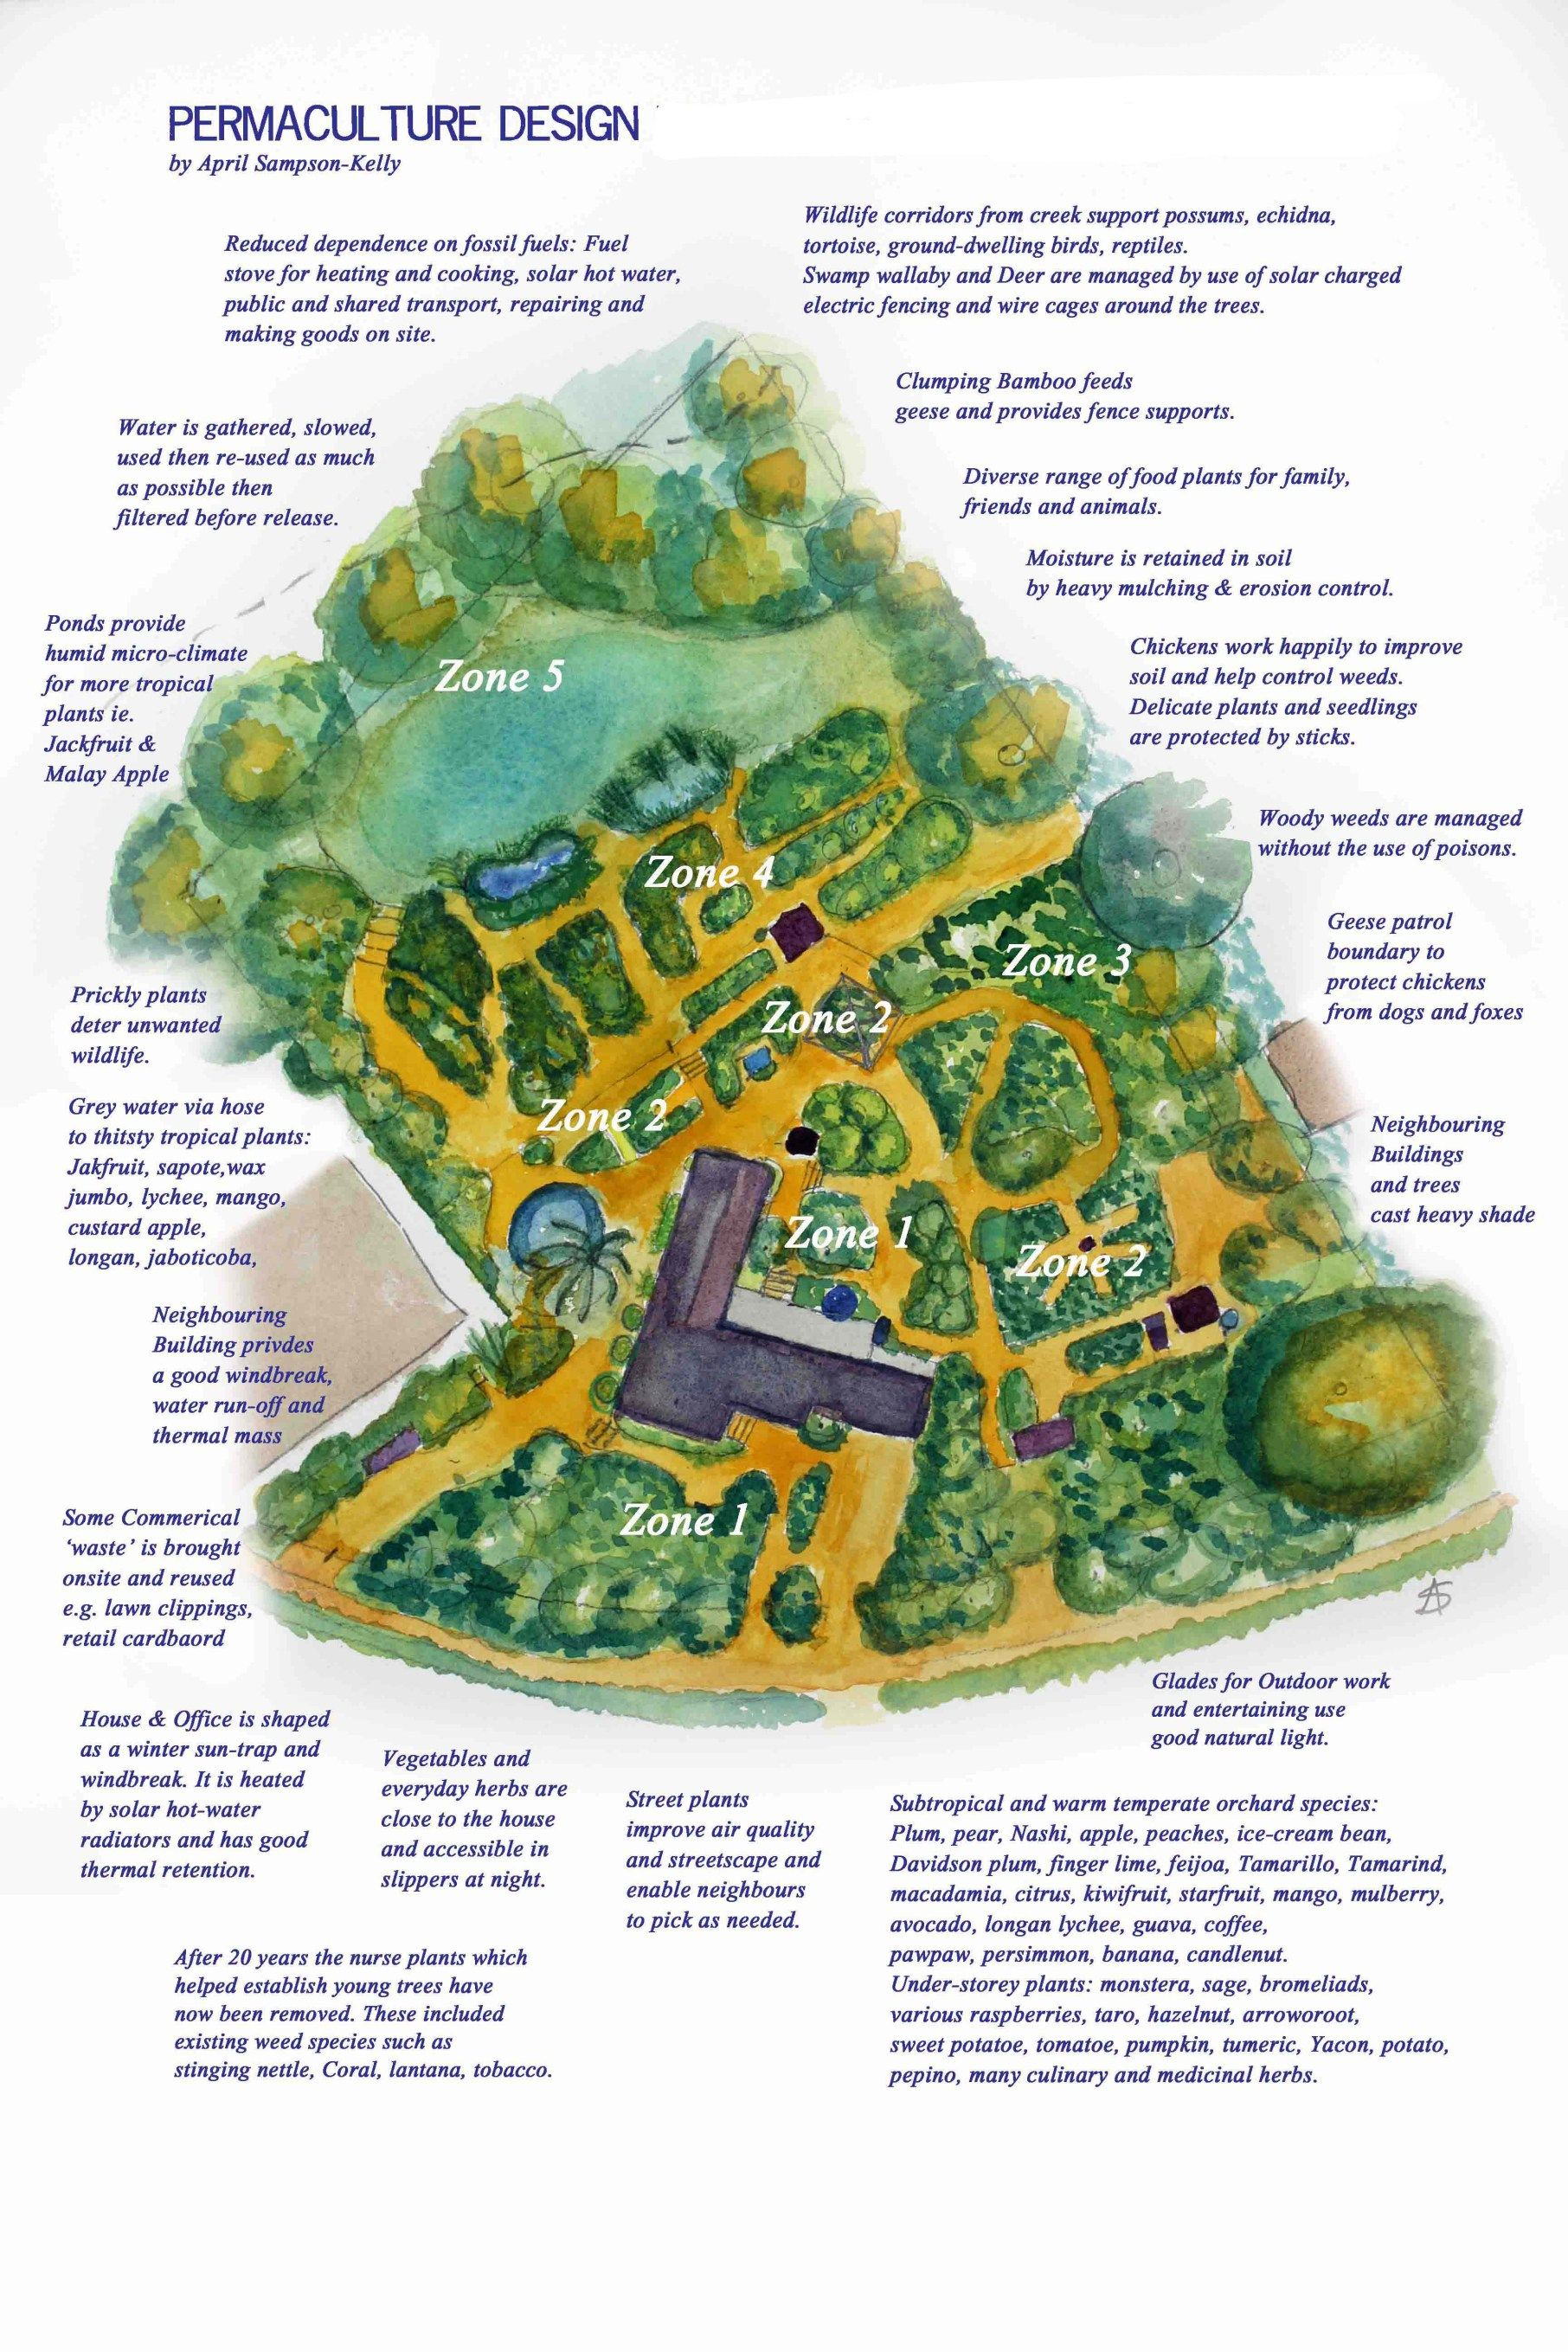 Permaculture Design Examples Google Search: Our Permaculture Design And Demonstration Site.